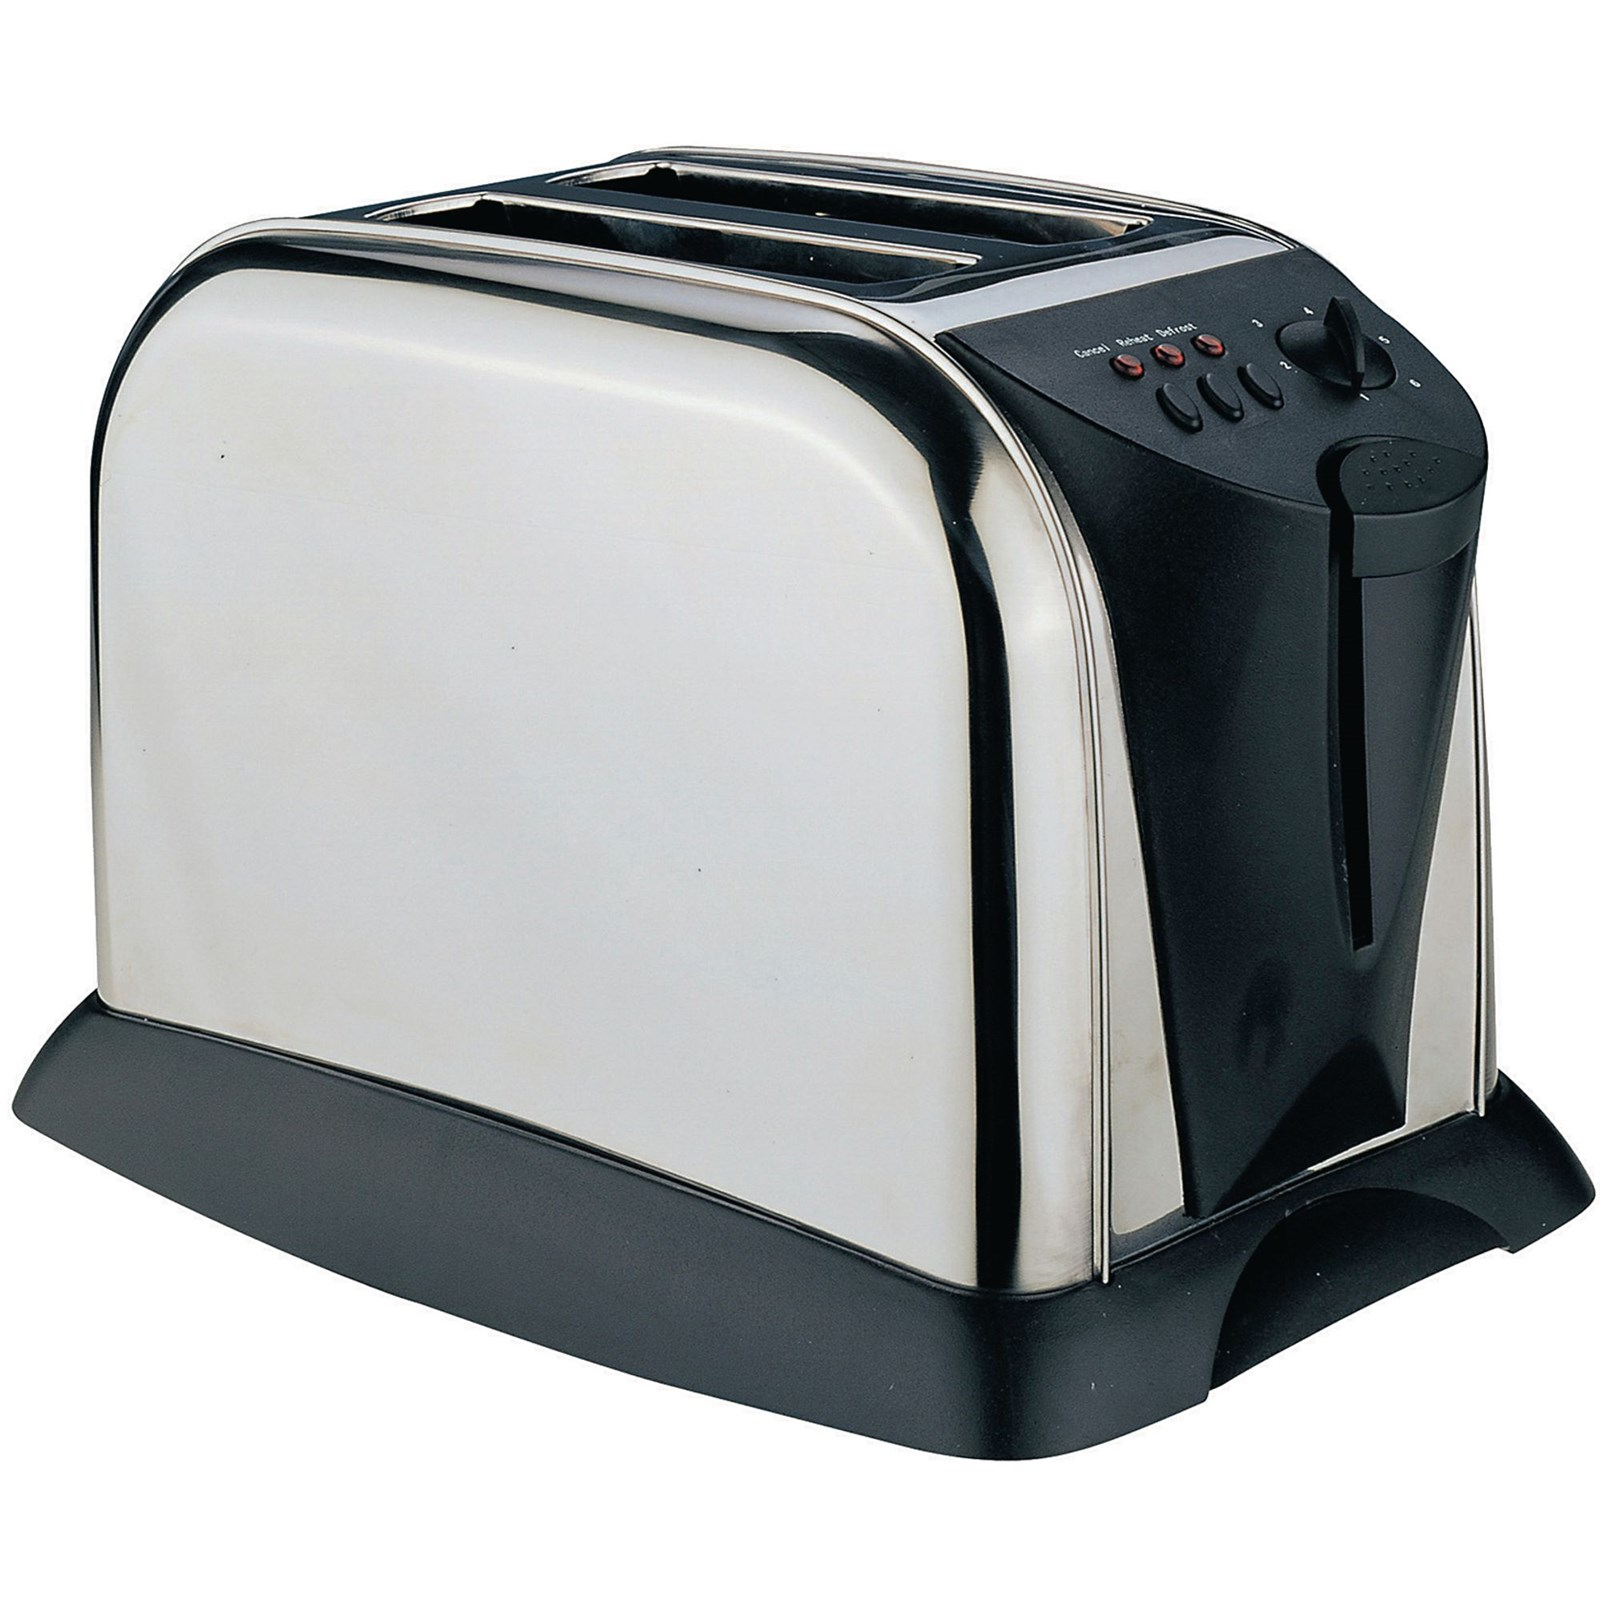 cream retro toaster smeg style slice toasters